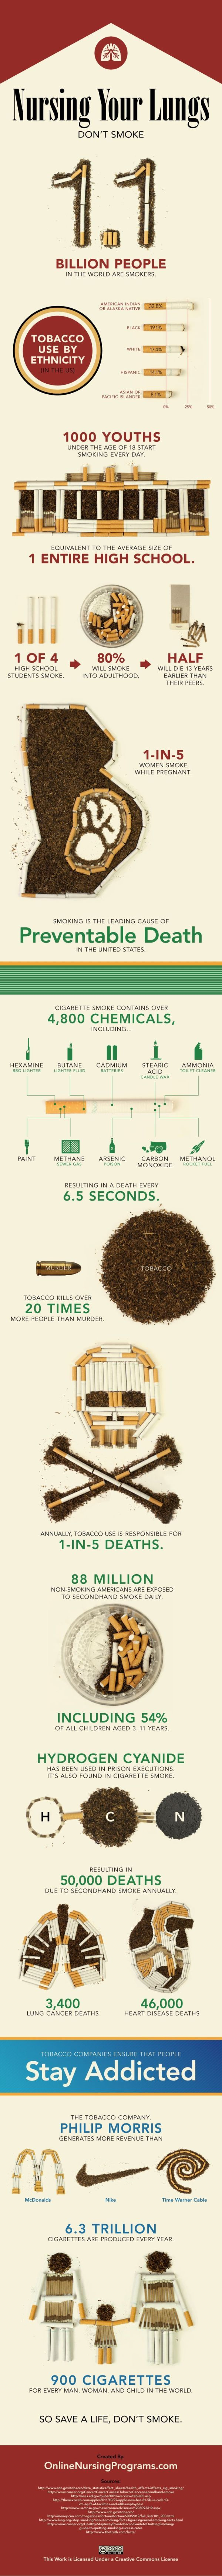 Looking for some smoking statistics to share? Check out this infographic.